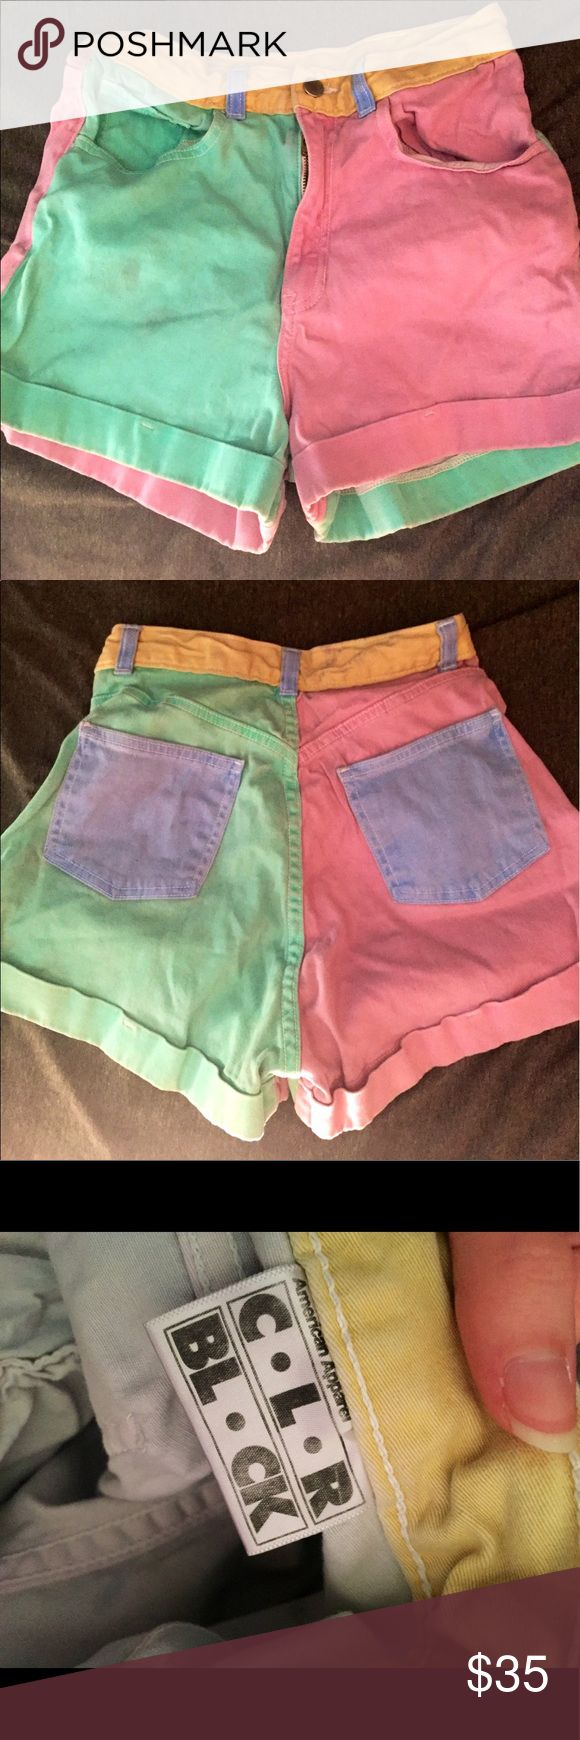 Vintage American apparel pastel shorts Vintage American apparel pastel shorts in great condition! Only wore them a few times so they still are like new. American Apparel Shorts Jean Shorts